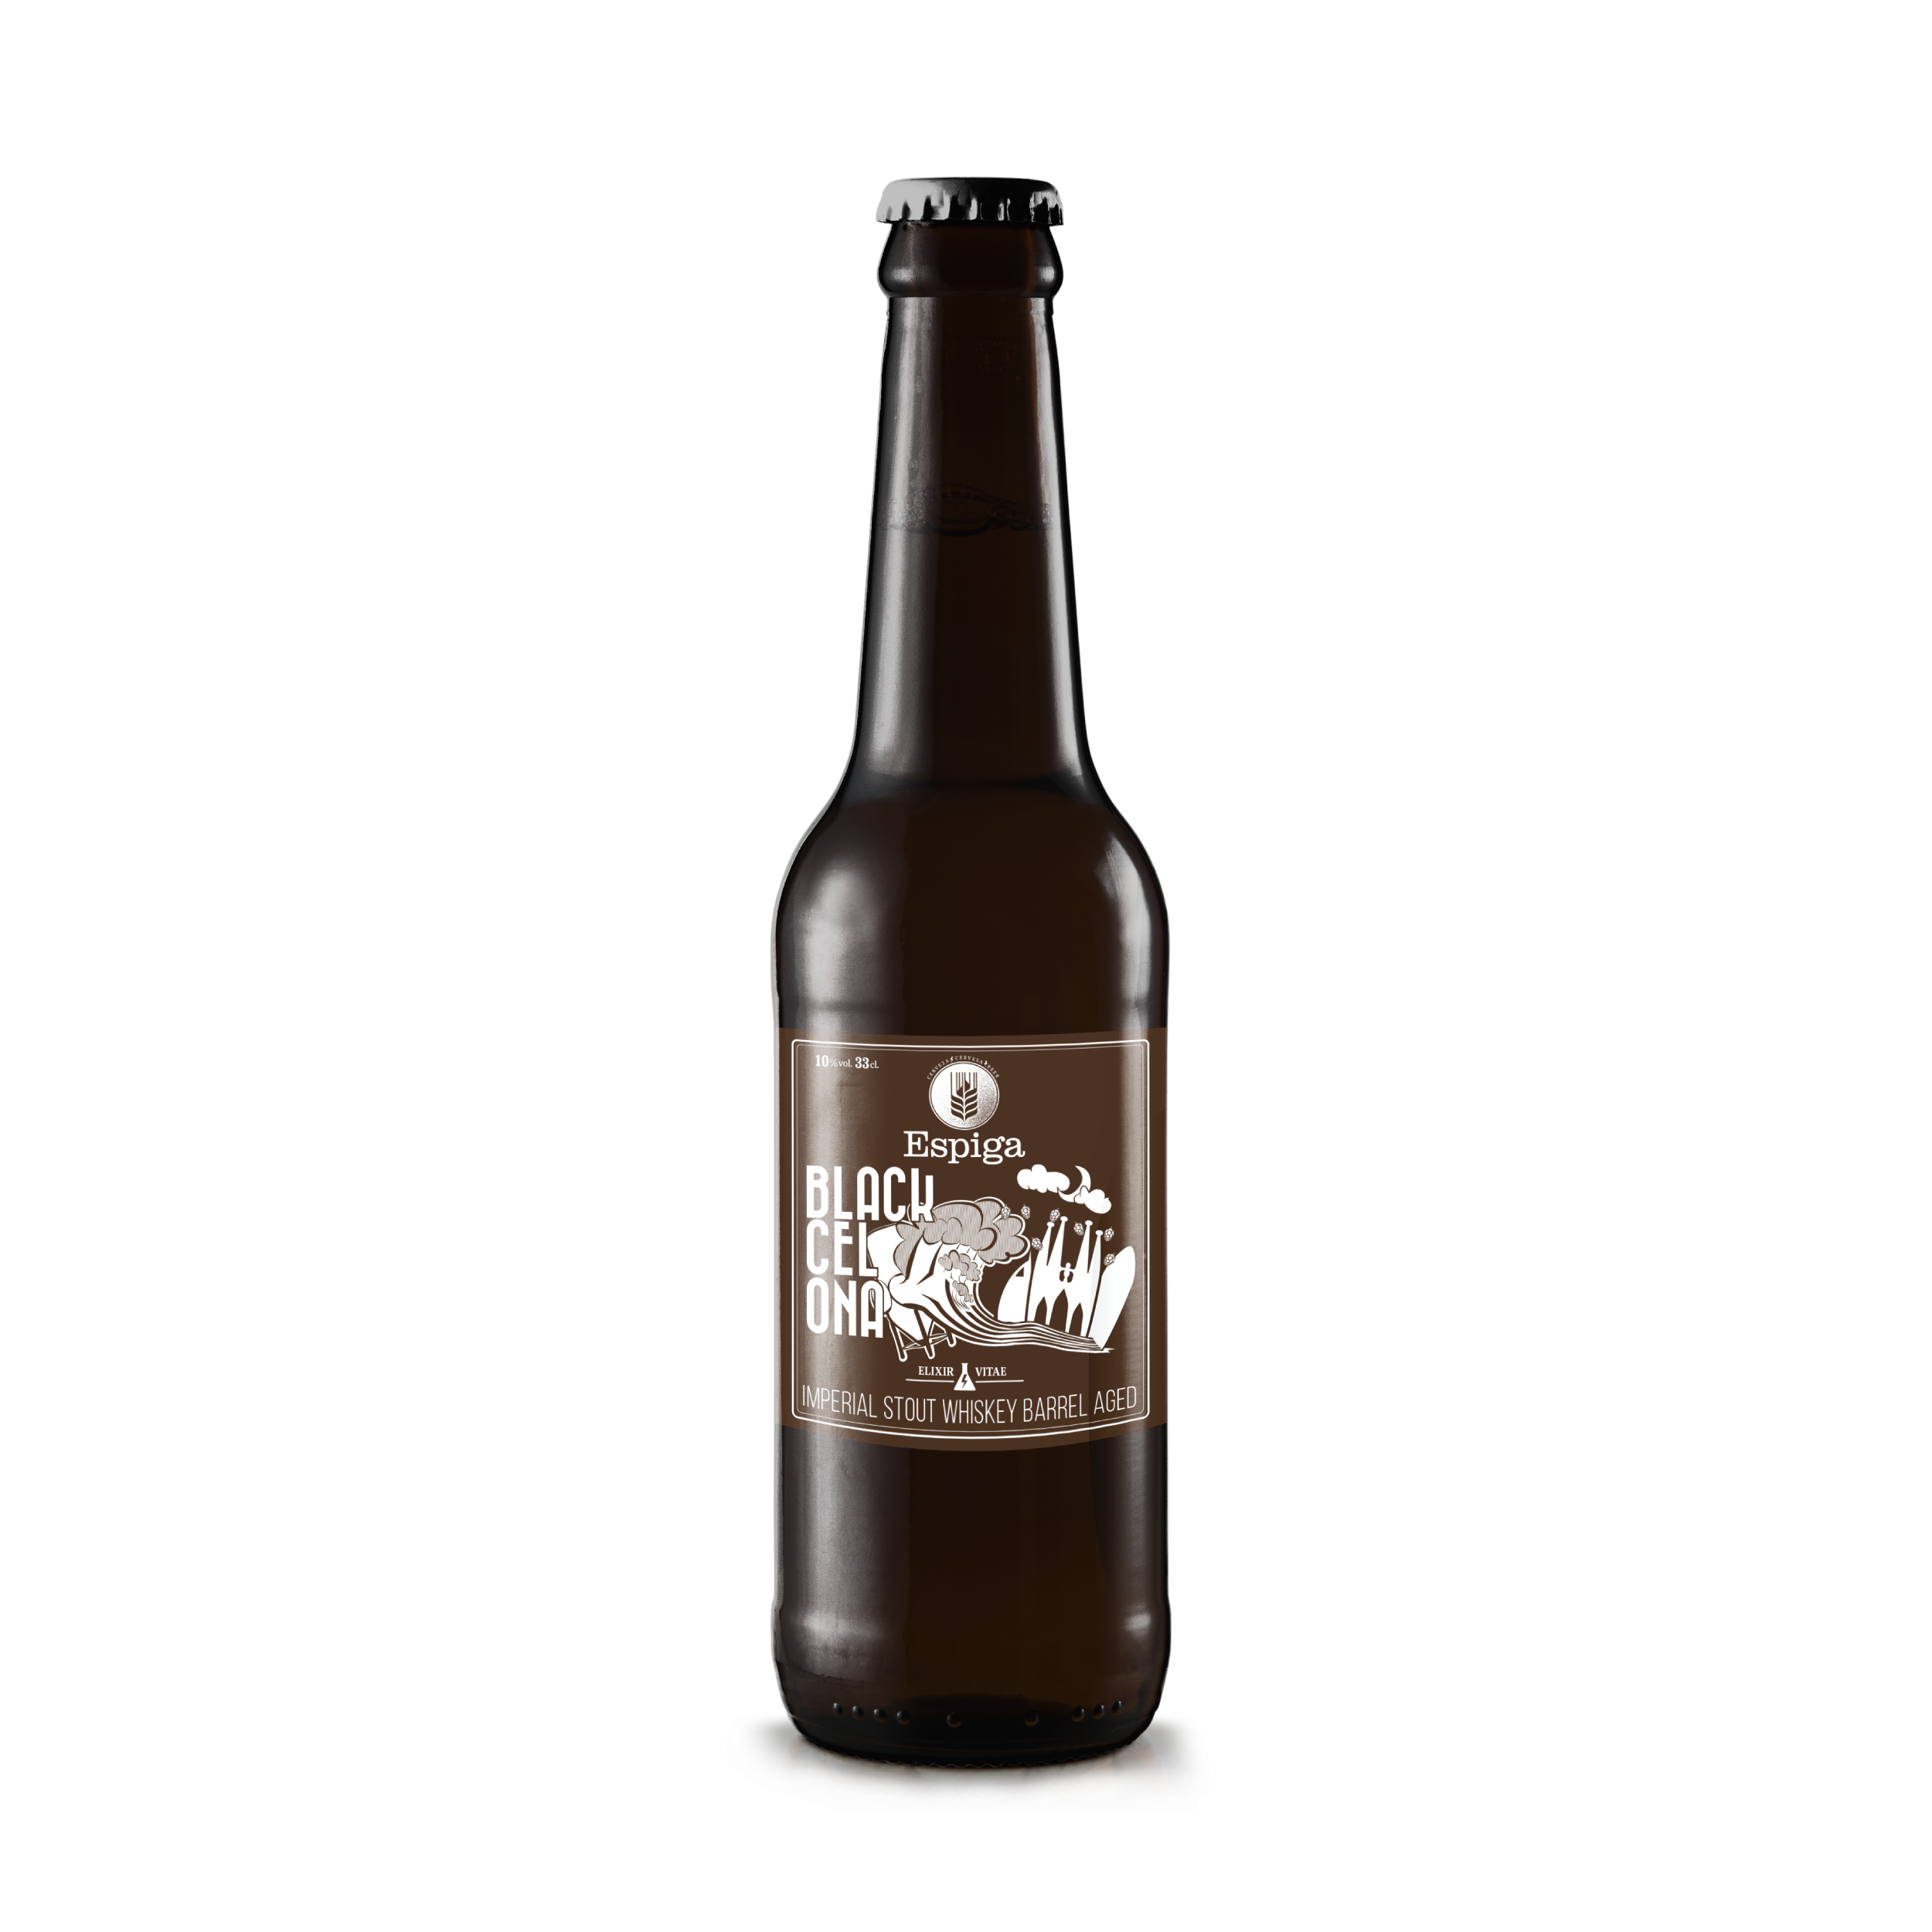 https://www.espiga.cat/wp-content/uploads/2019/09/BLACK-CEL-ONA-IMPERIAL-STOUT-WHISKEY.png